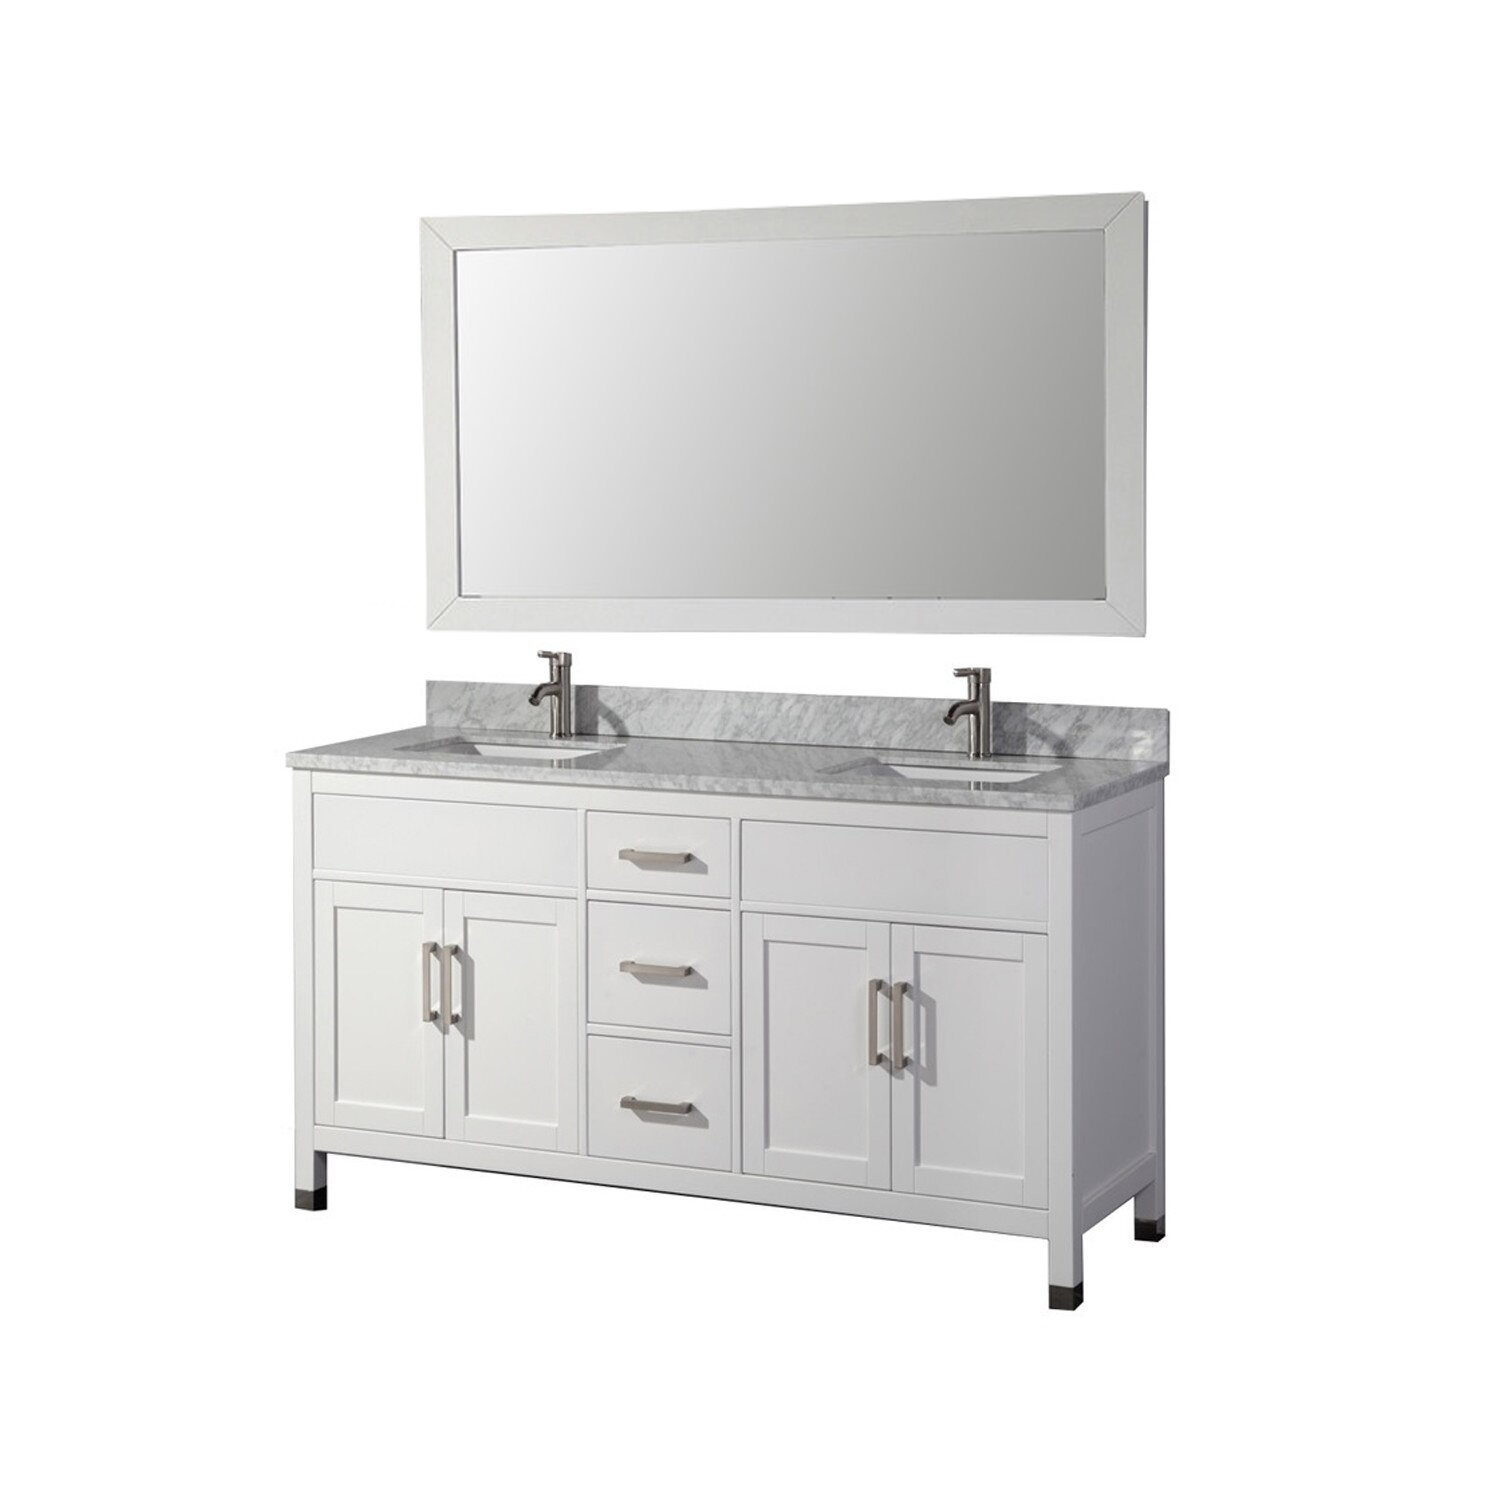 Mtdvanities Ricca 72 Double Sink Bathroom Vanity Set With Single Mirror Reviews Wayfair